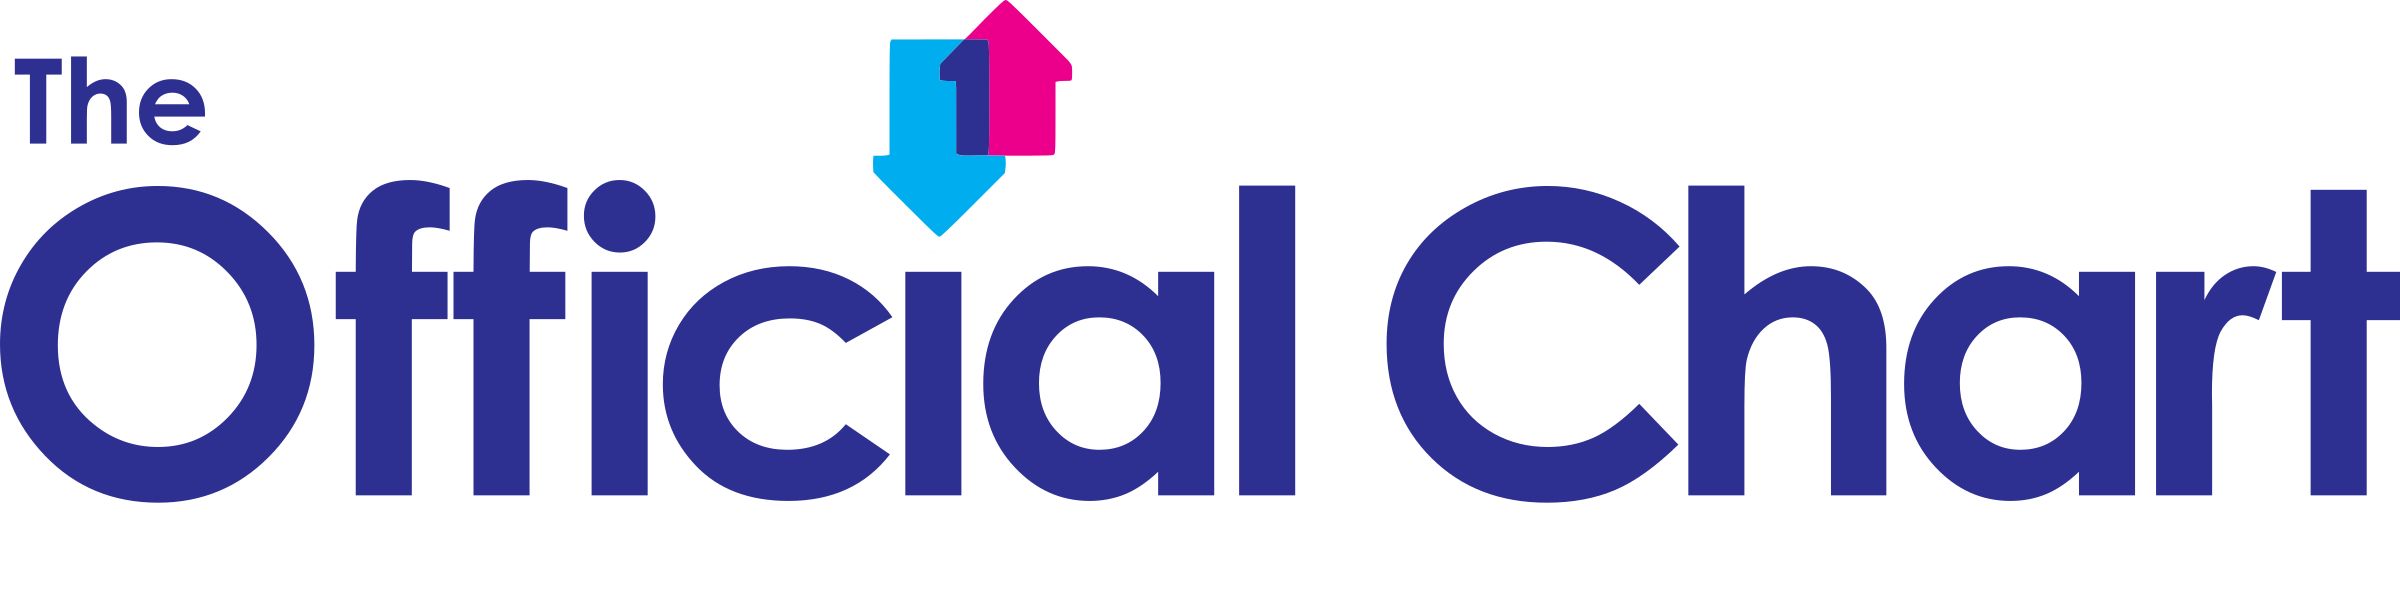 the-official-chart-logo-png-transparent.